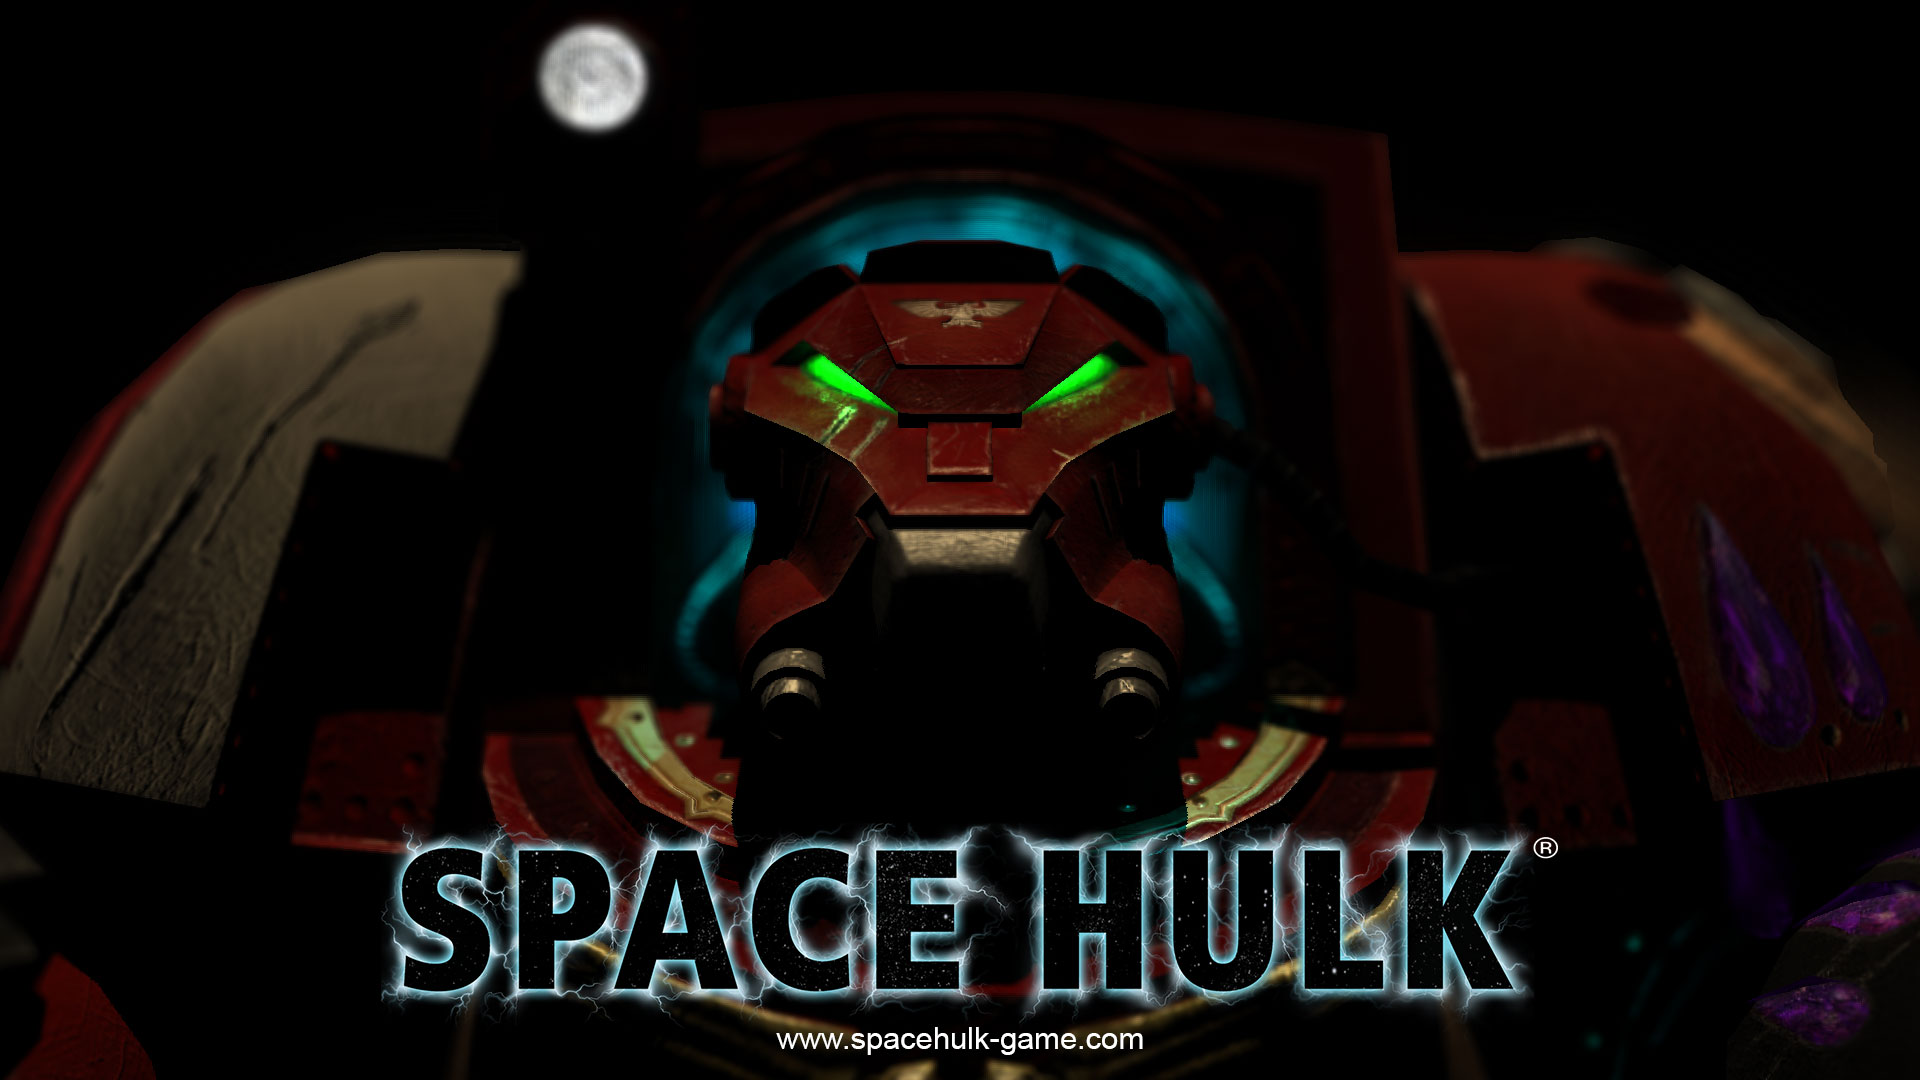 Space Hulk by Full Control logo